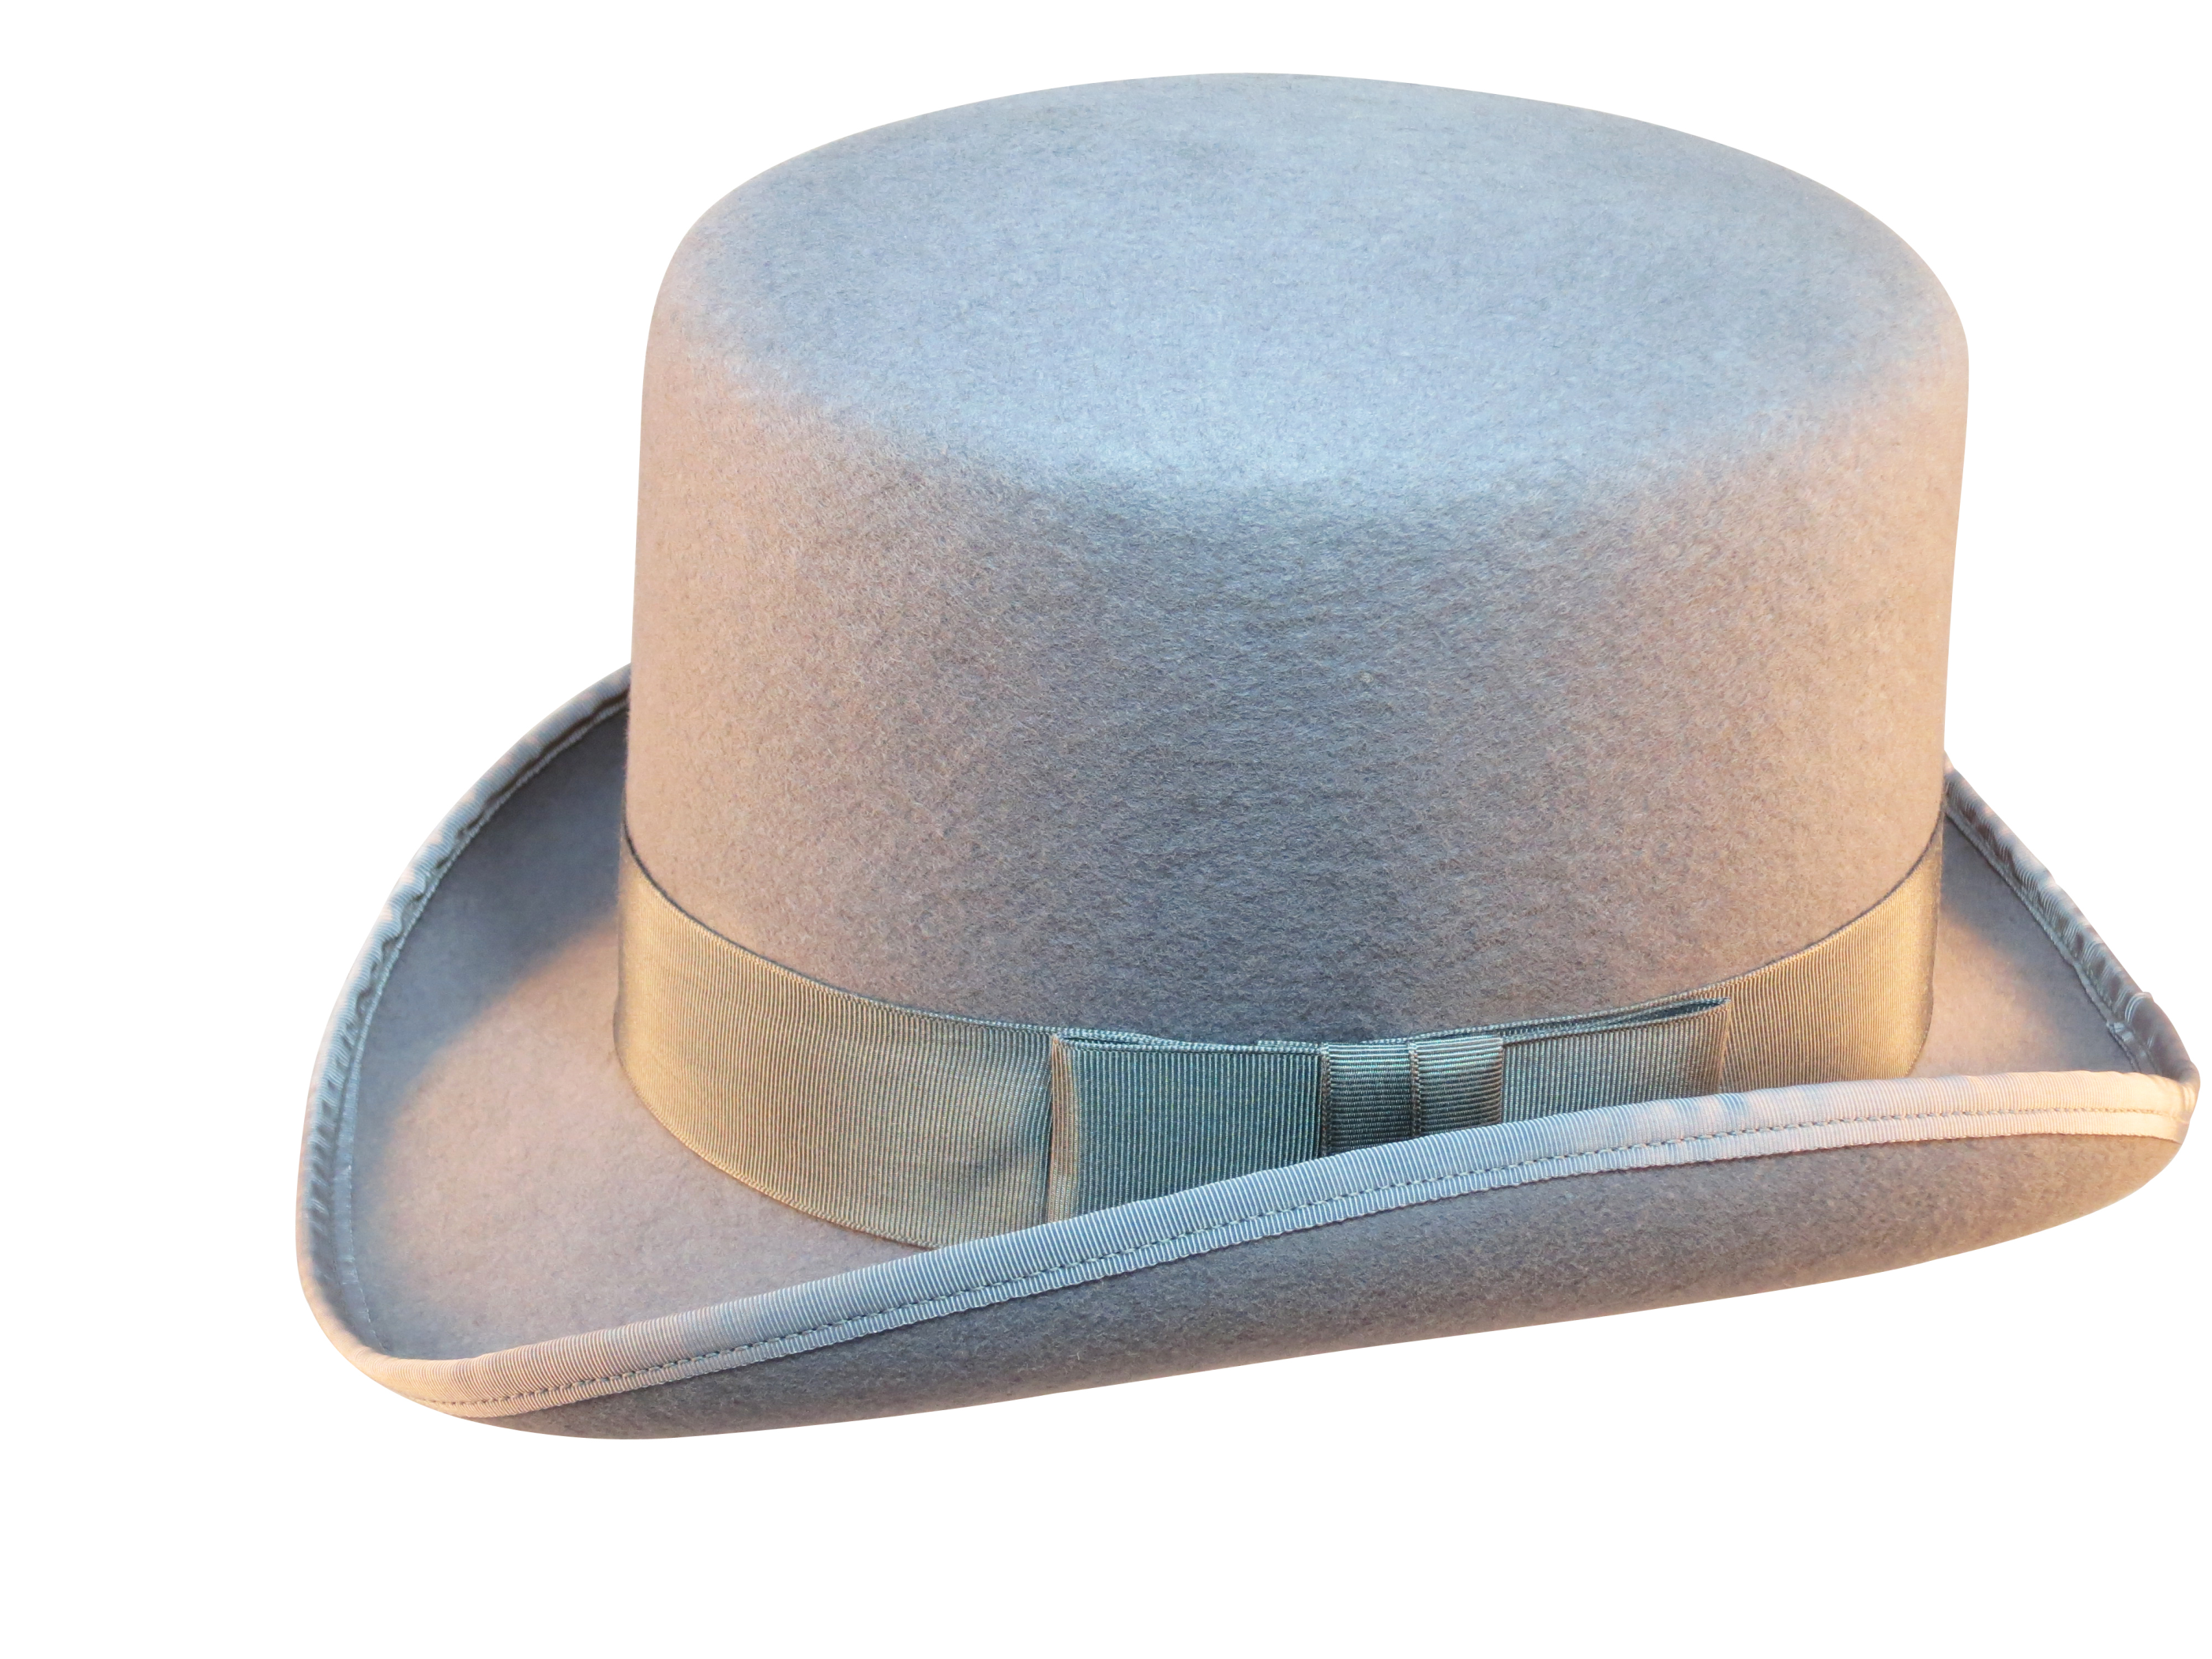 Flat Topped Bowler from Top-Hats.com 59d0b8c97bf